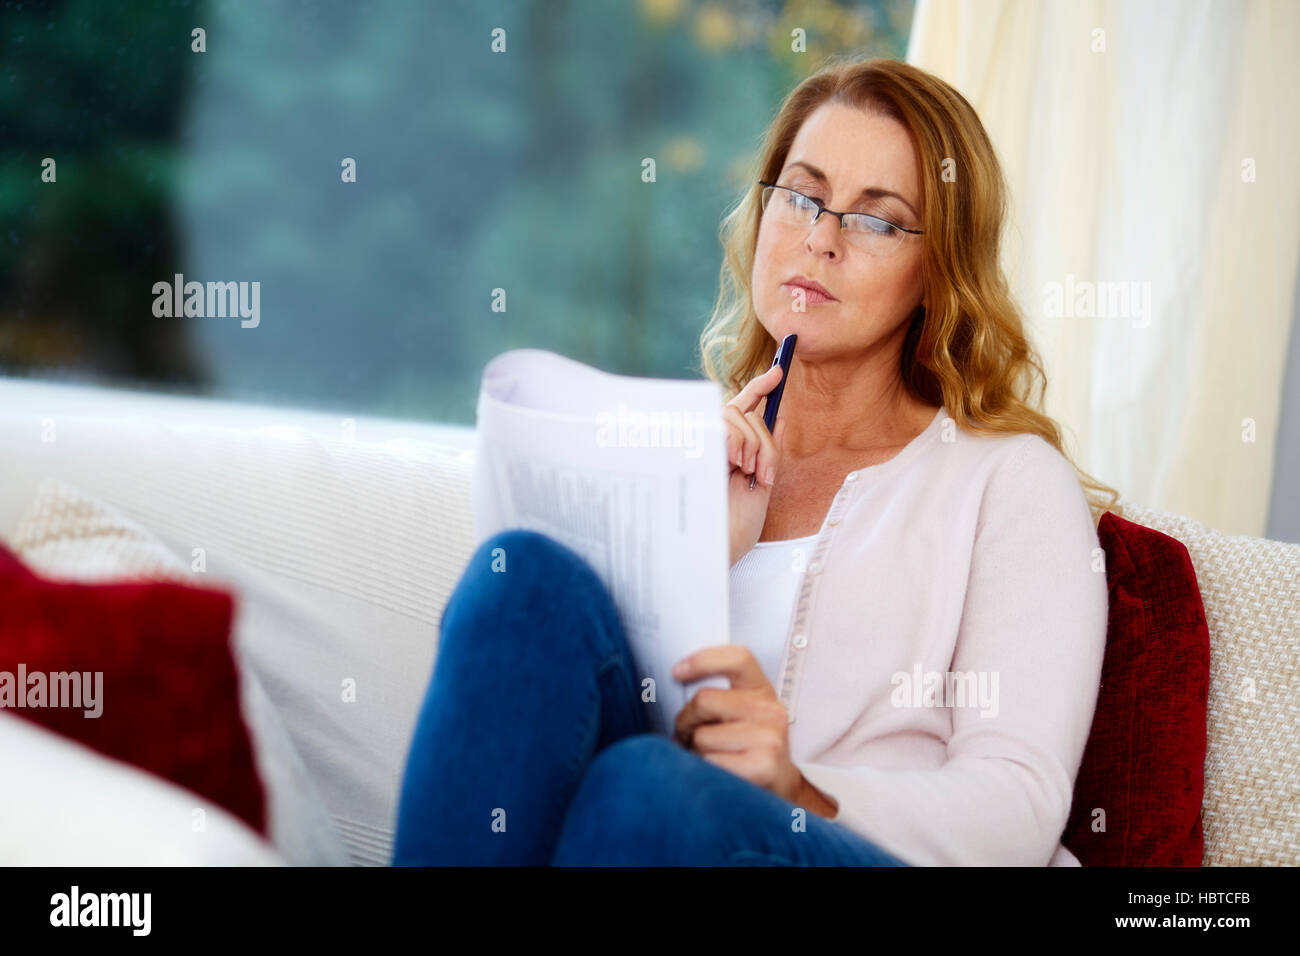 Thoughtful looking woman - Stock Image